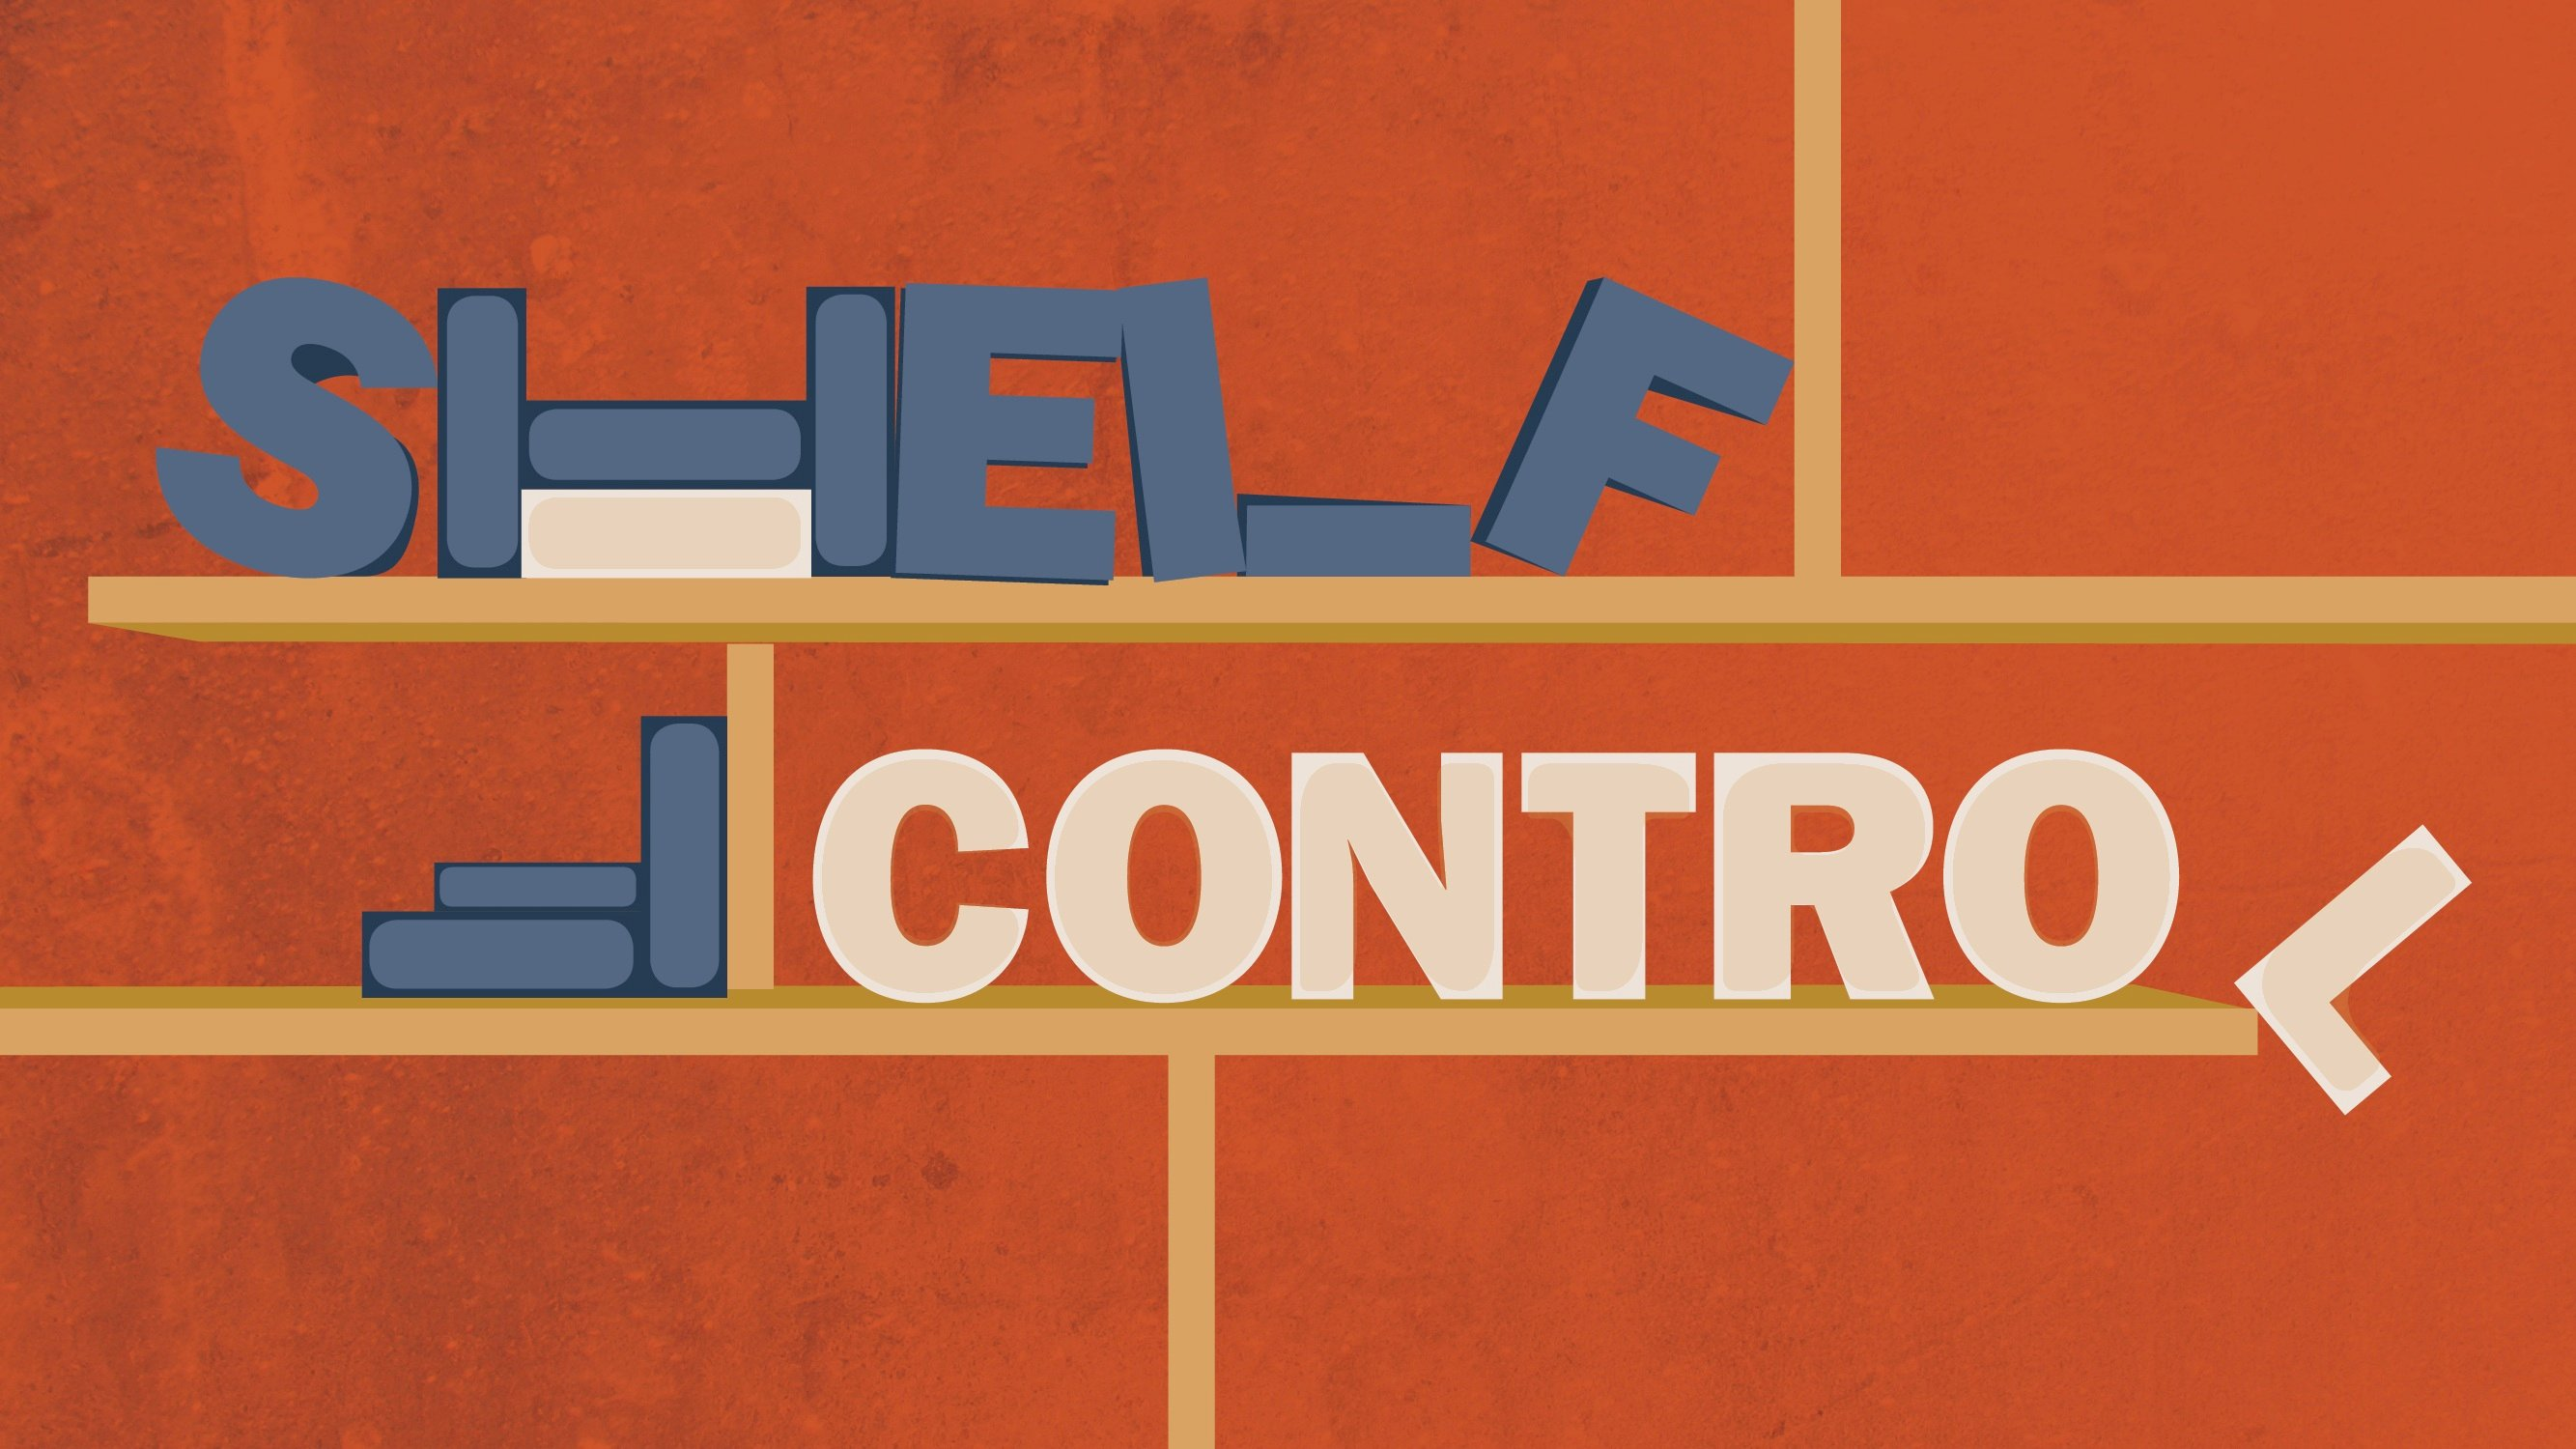 Shelf Control: Take part in a Novel Engagement with this romance-focused iOS app